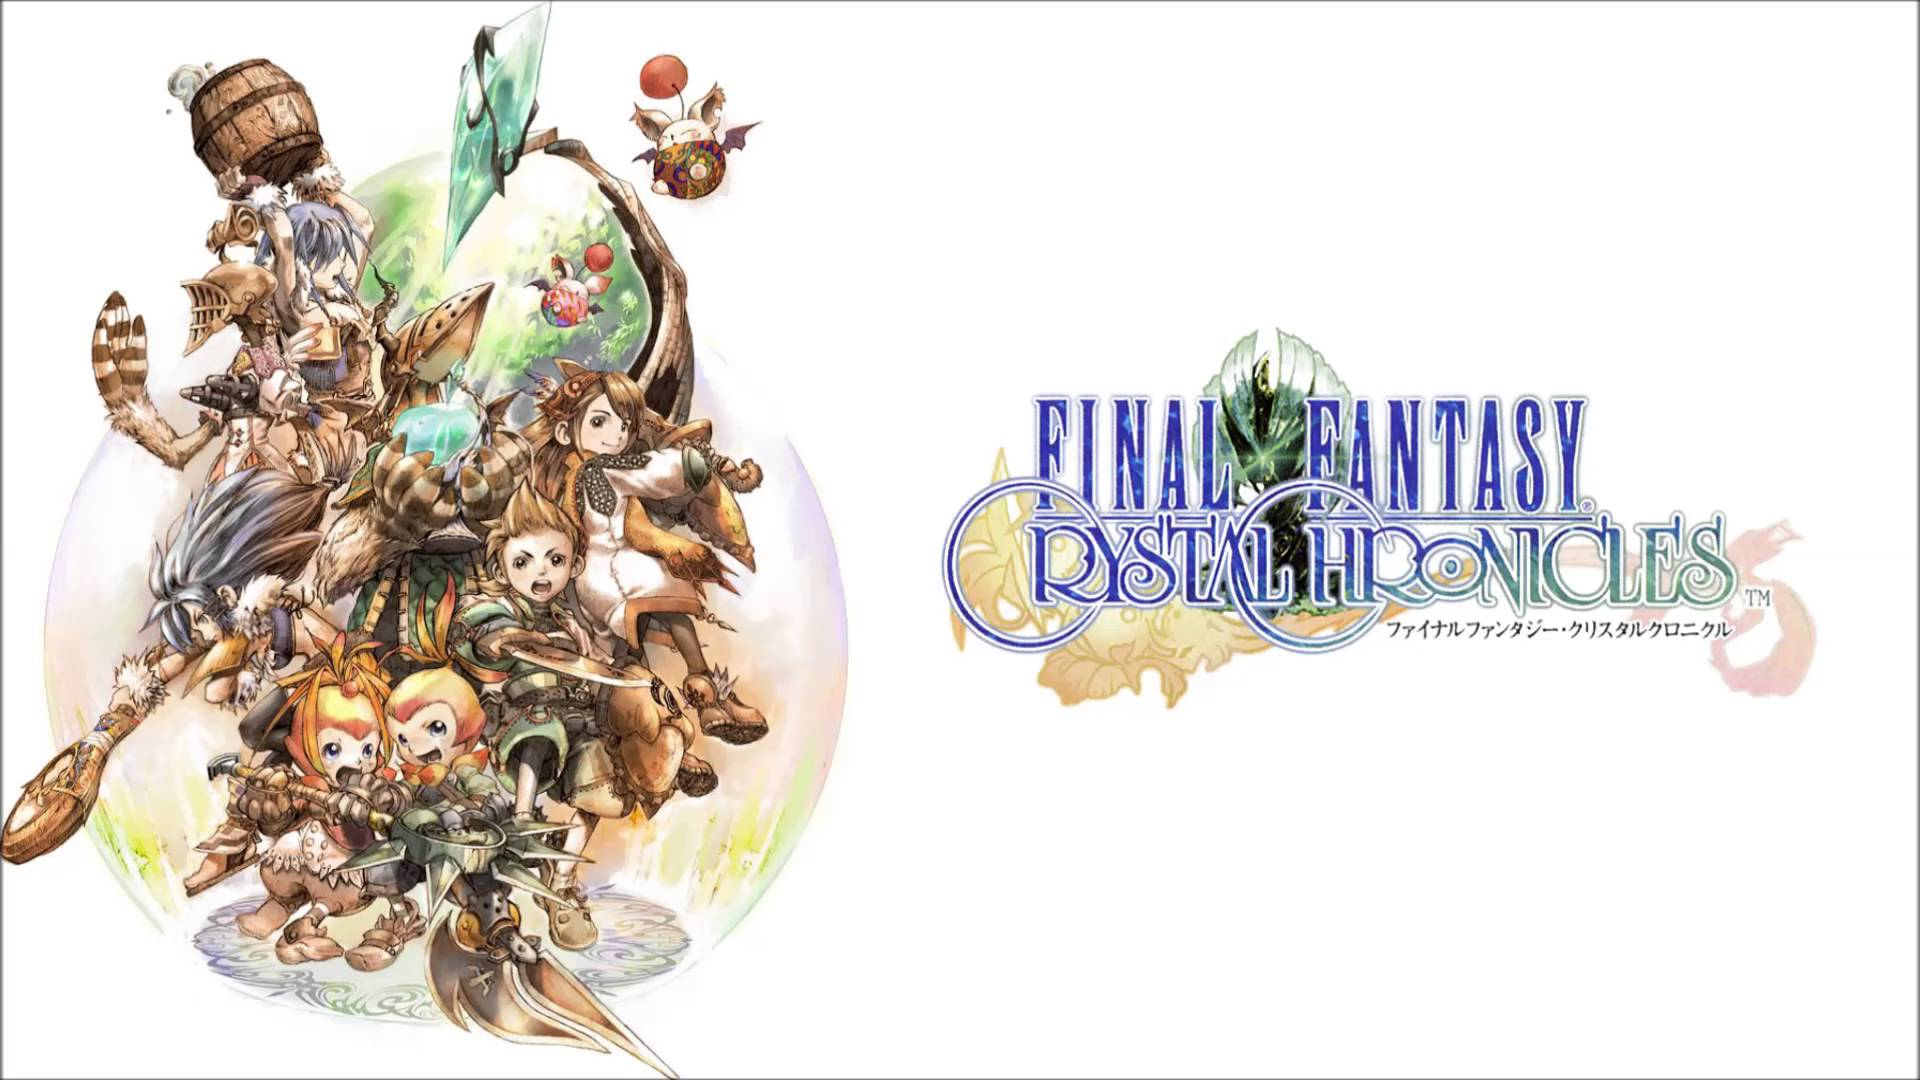 Final Fantasy Crystal Chronicles Returns With Remastered Versions